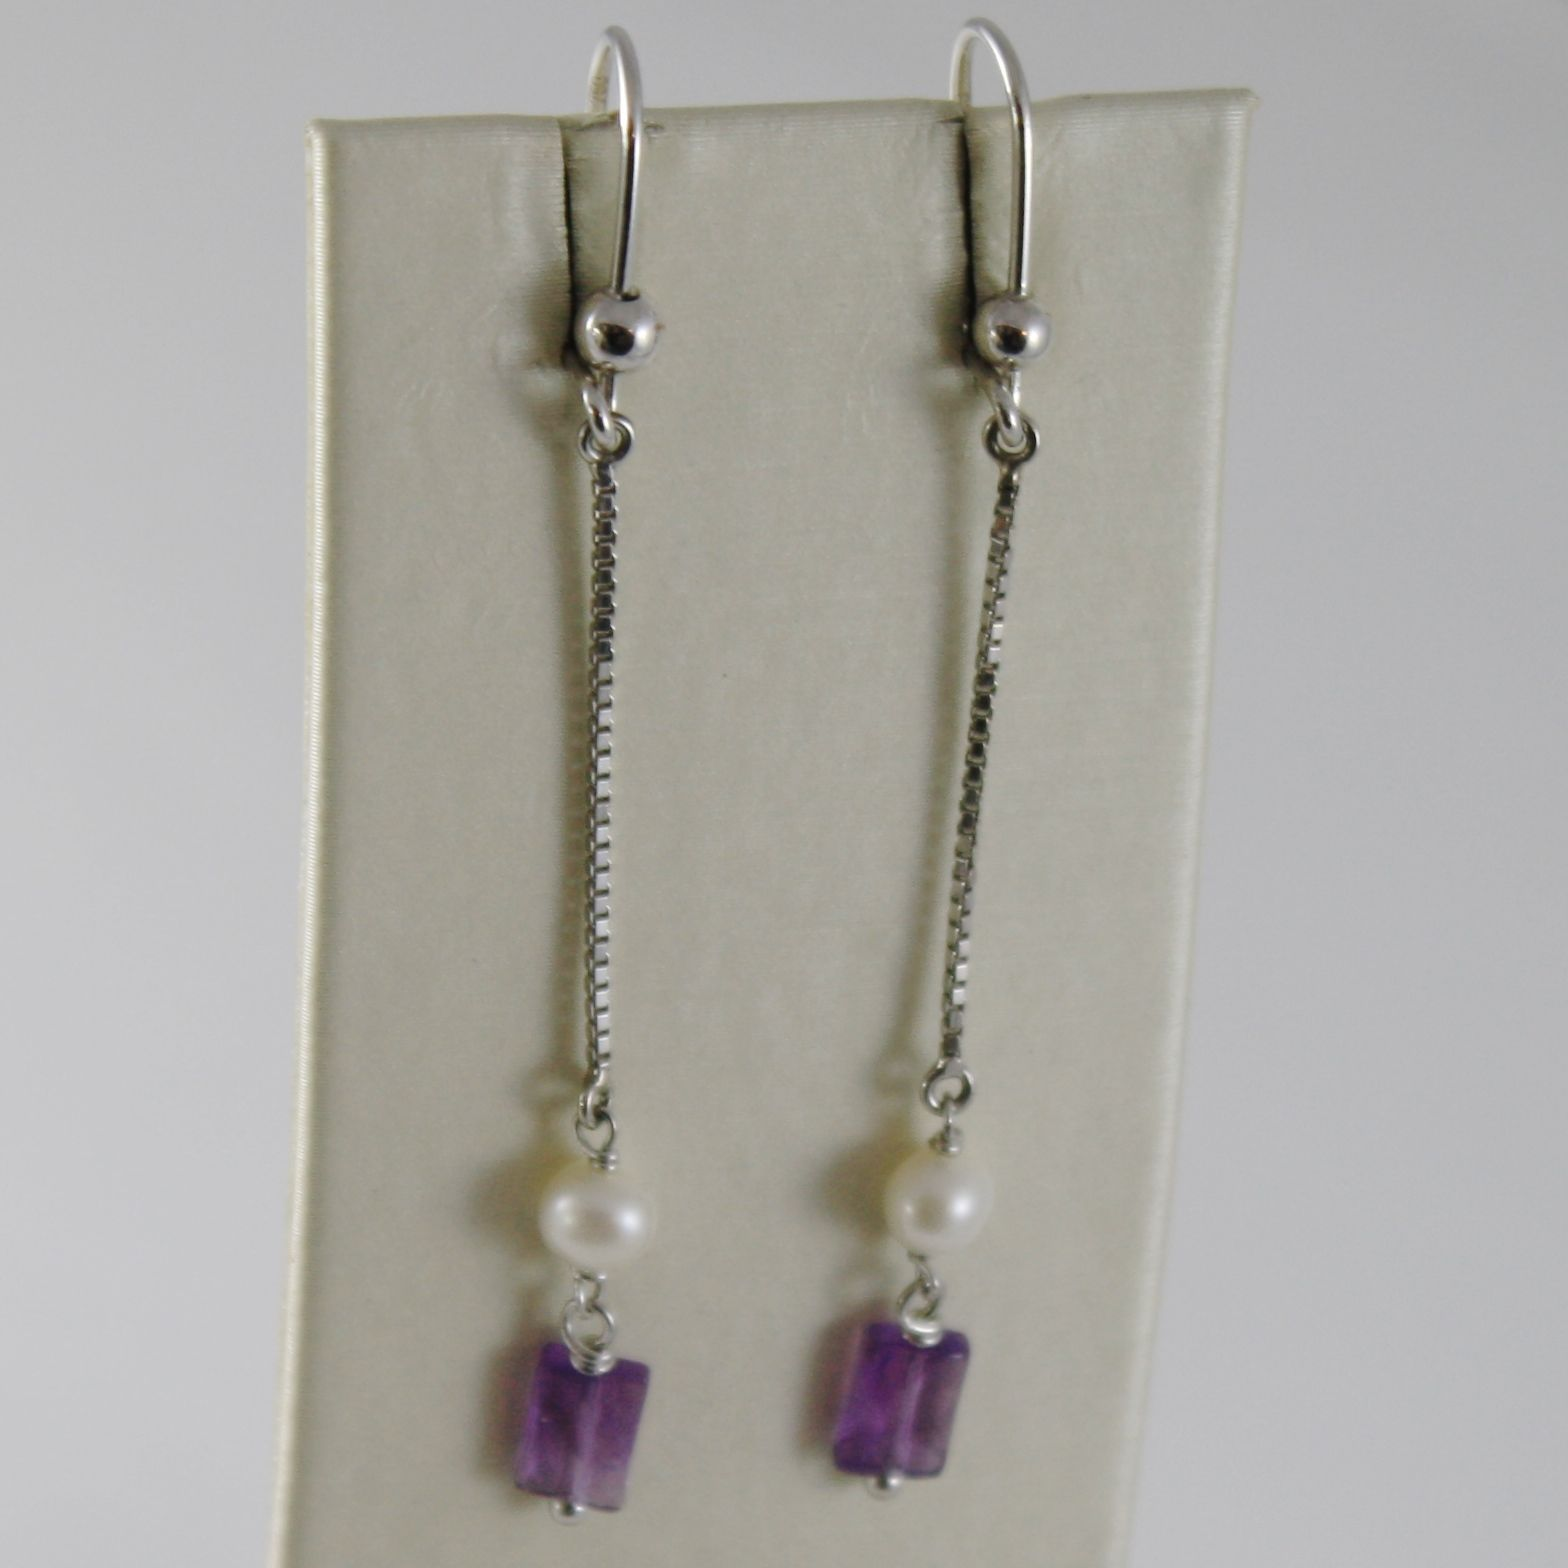 SOLID 18K WHITE GOLD PENDANT EARRINGS WITH AMETHYST AND PEARL MADE IN ITALY